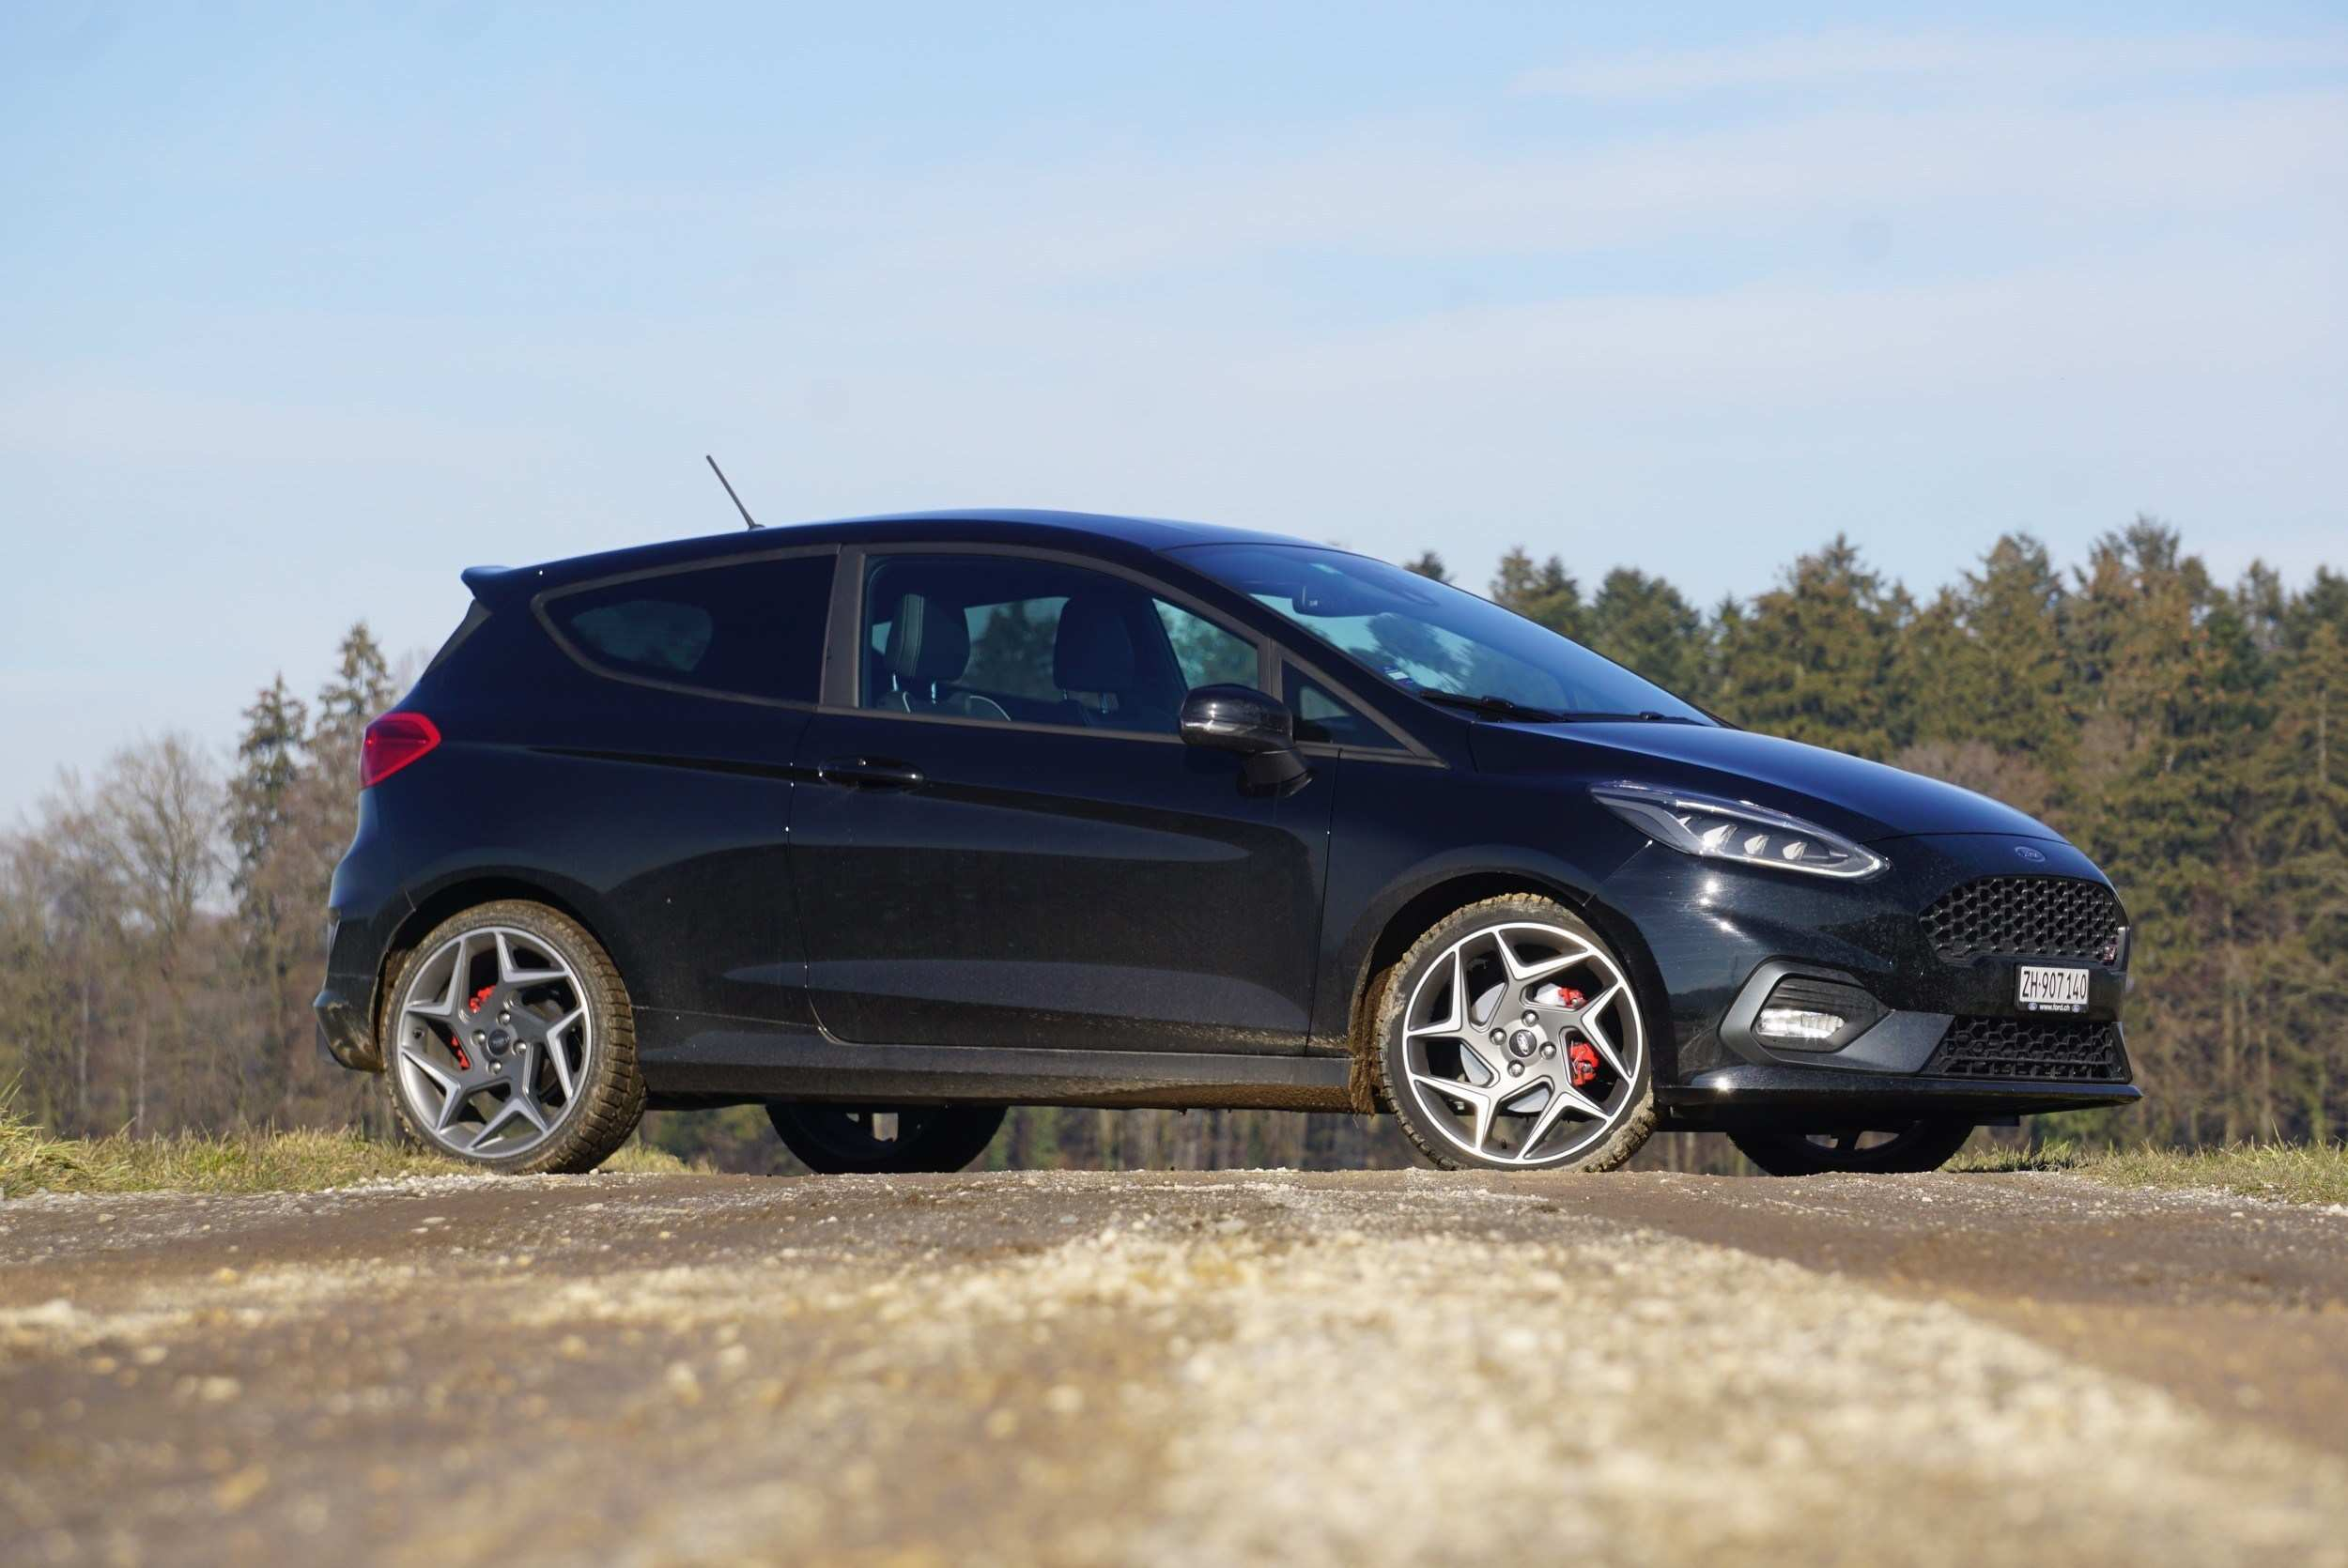 52 The Best 2019 Fiesta St Review And Release Date